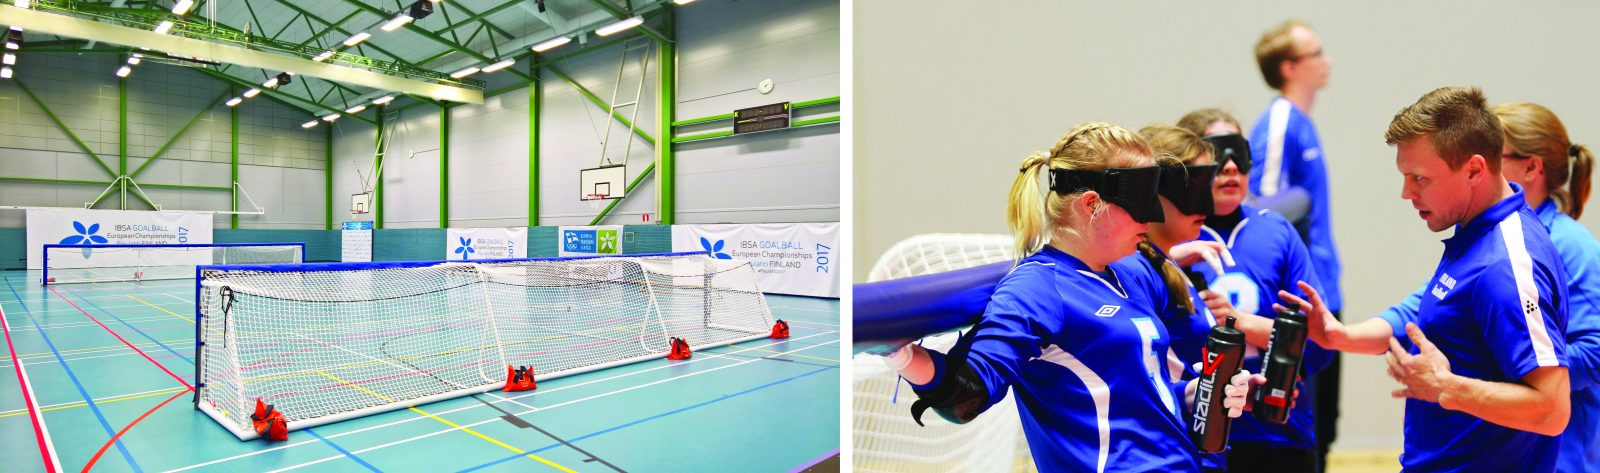 Goalfix international competition goalball goals at IBSA Goalball European Championships Pajulahti Finland